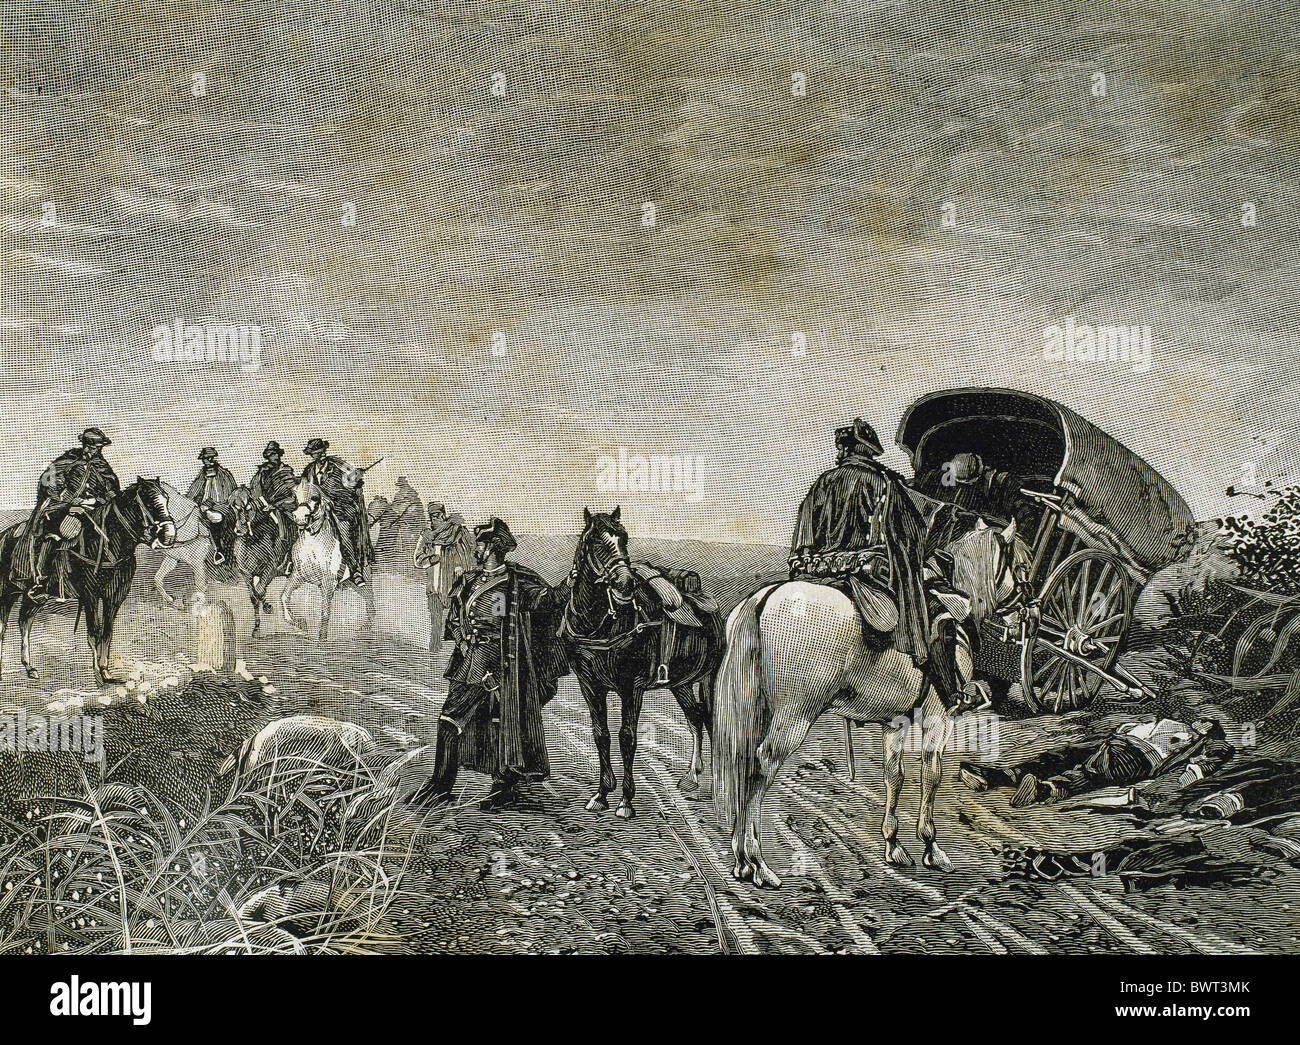 Spanish Restoration era (1875-1885). Reign of Alfonso XII. Civil guards patrol. Engraving by A. Barceló, 1884. - Stock Image